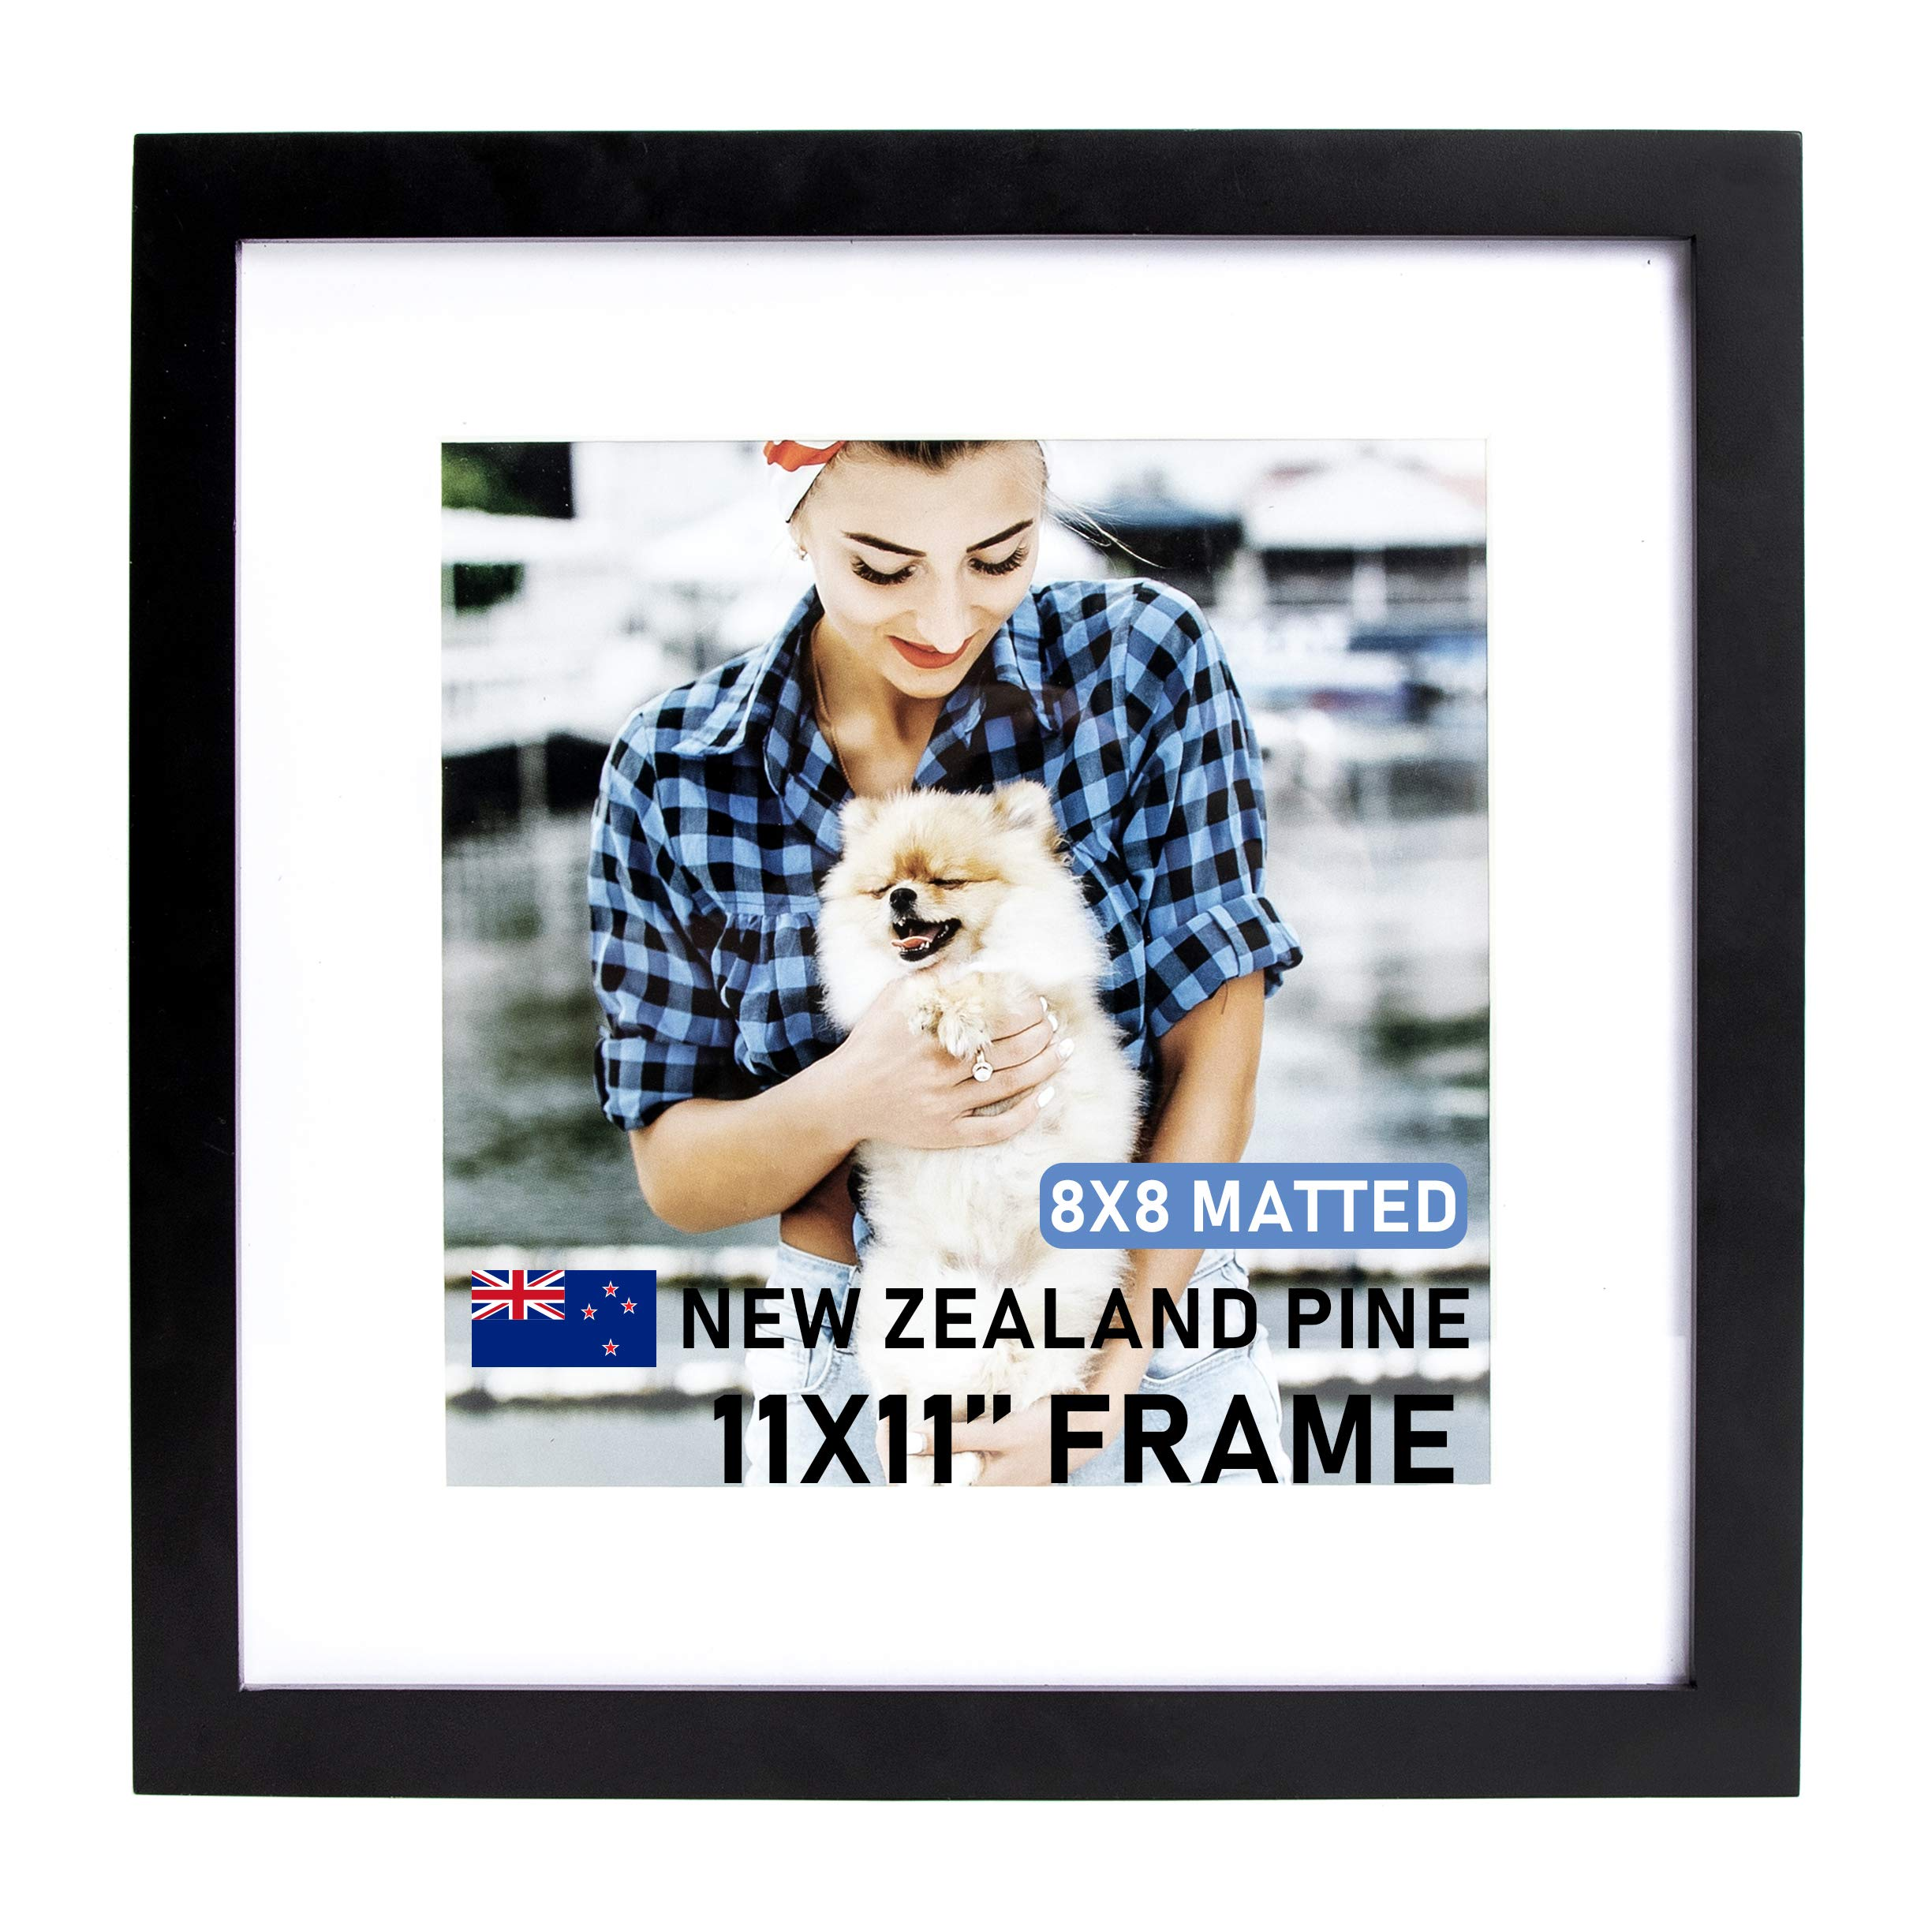 Beyond Your Thoughts Wood + Real Glass (Hang/Stand) 11X11 Black Picture Photo Frame with Matted for 8X8 Photo for Wall and Table Top (1 Pack) by Beyond Your Thoughts